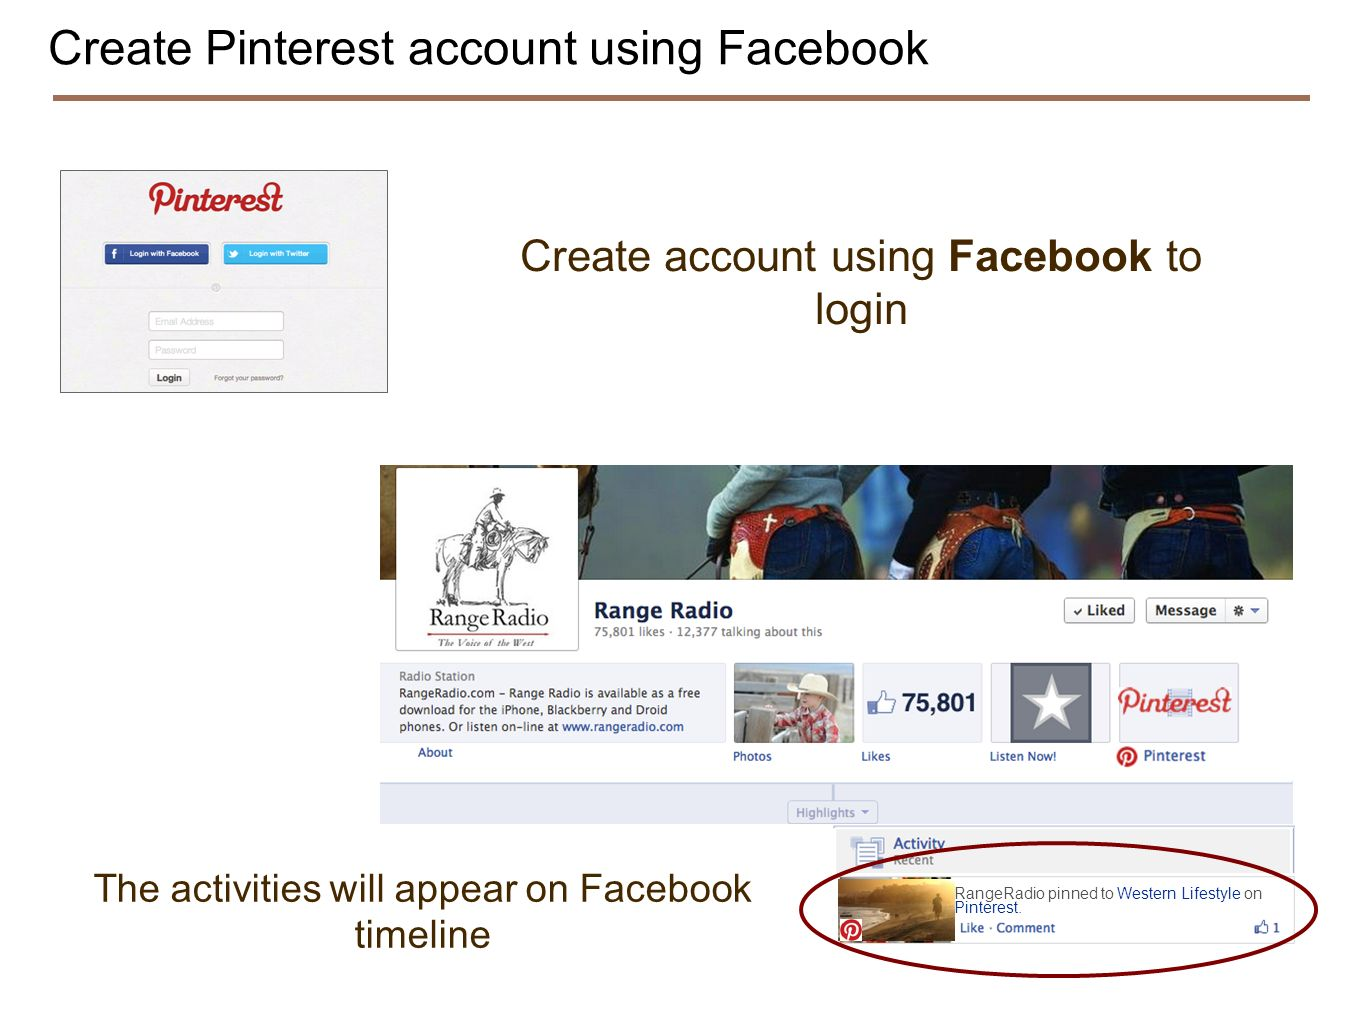 Create Pinterest account using Facebook Create account using Facebook to login RangeRadio pinned to Western Lifestyle on Pinterest. The activities wil